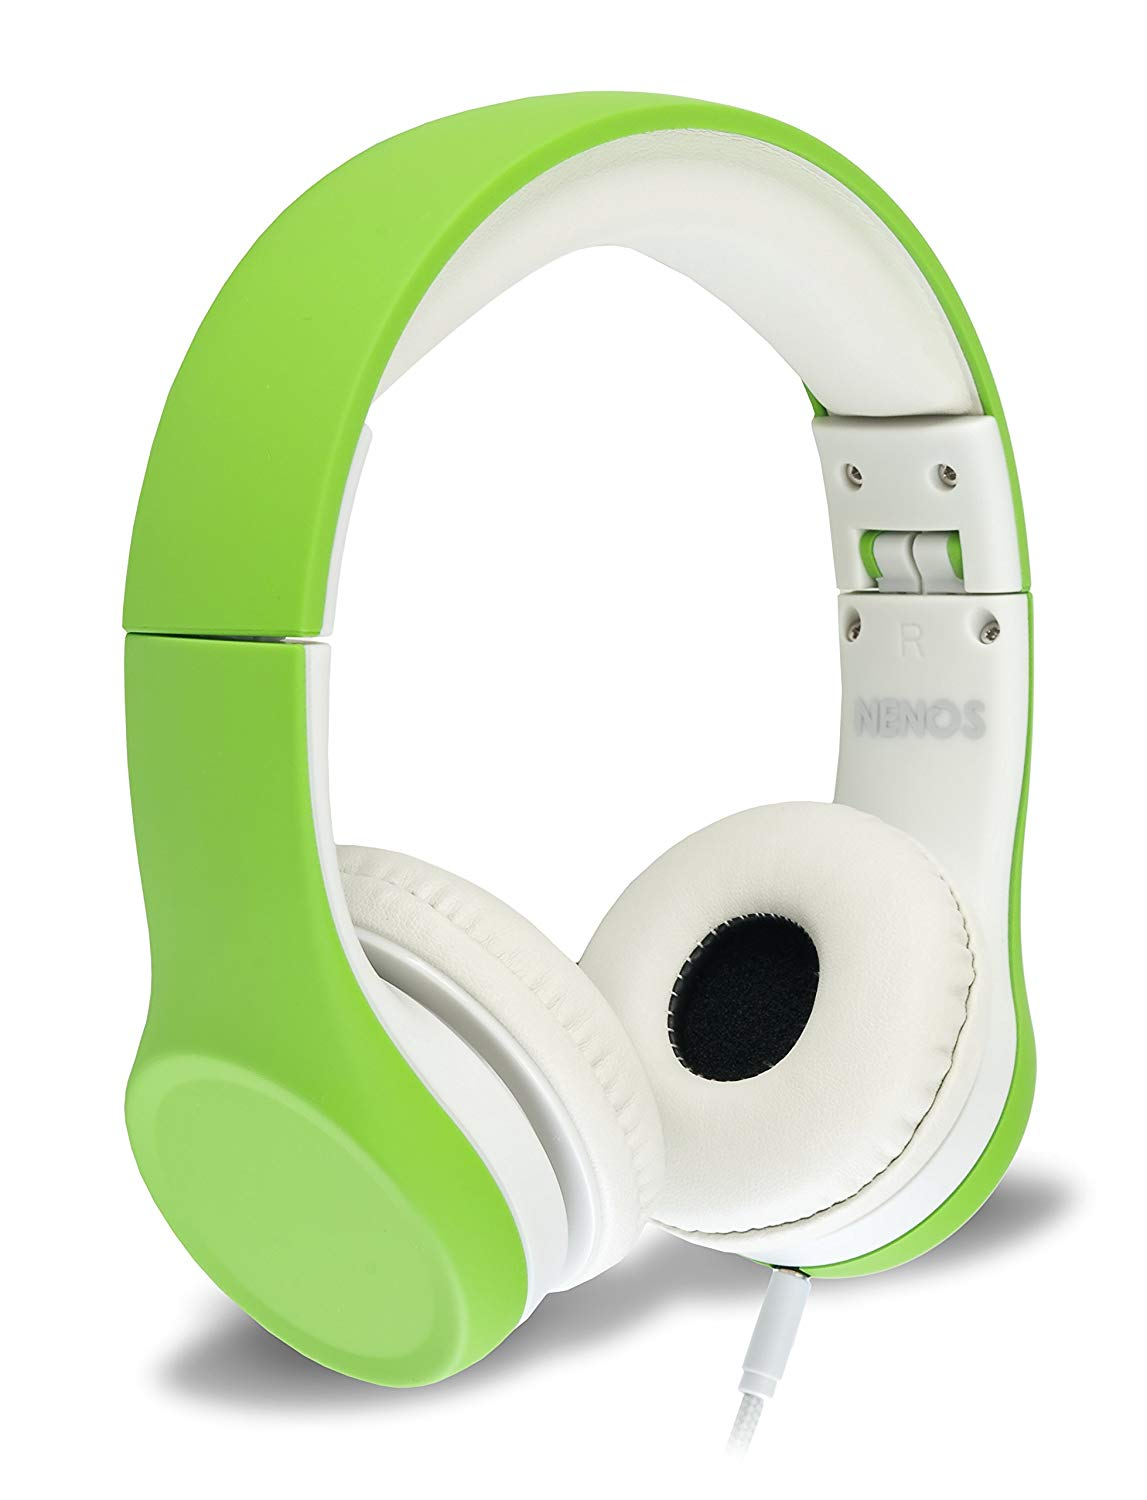 Kids headphones - We have these and they are excellent. Volume limiting for kids and has a soft no-tangle cord.